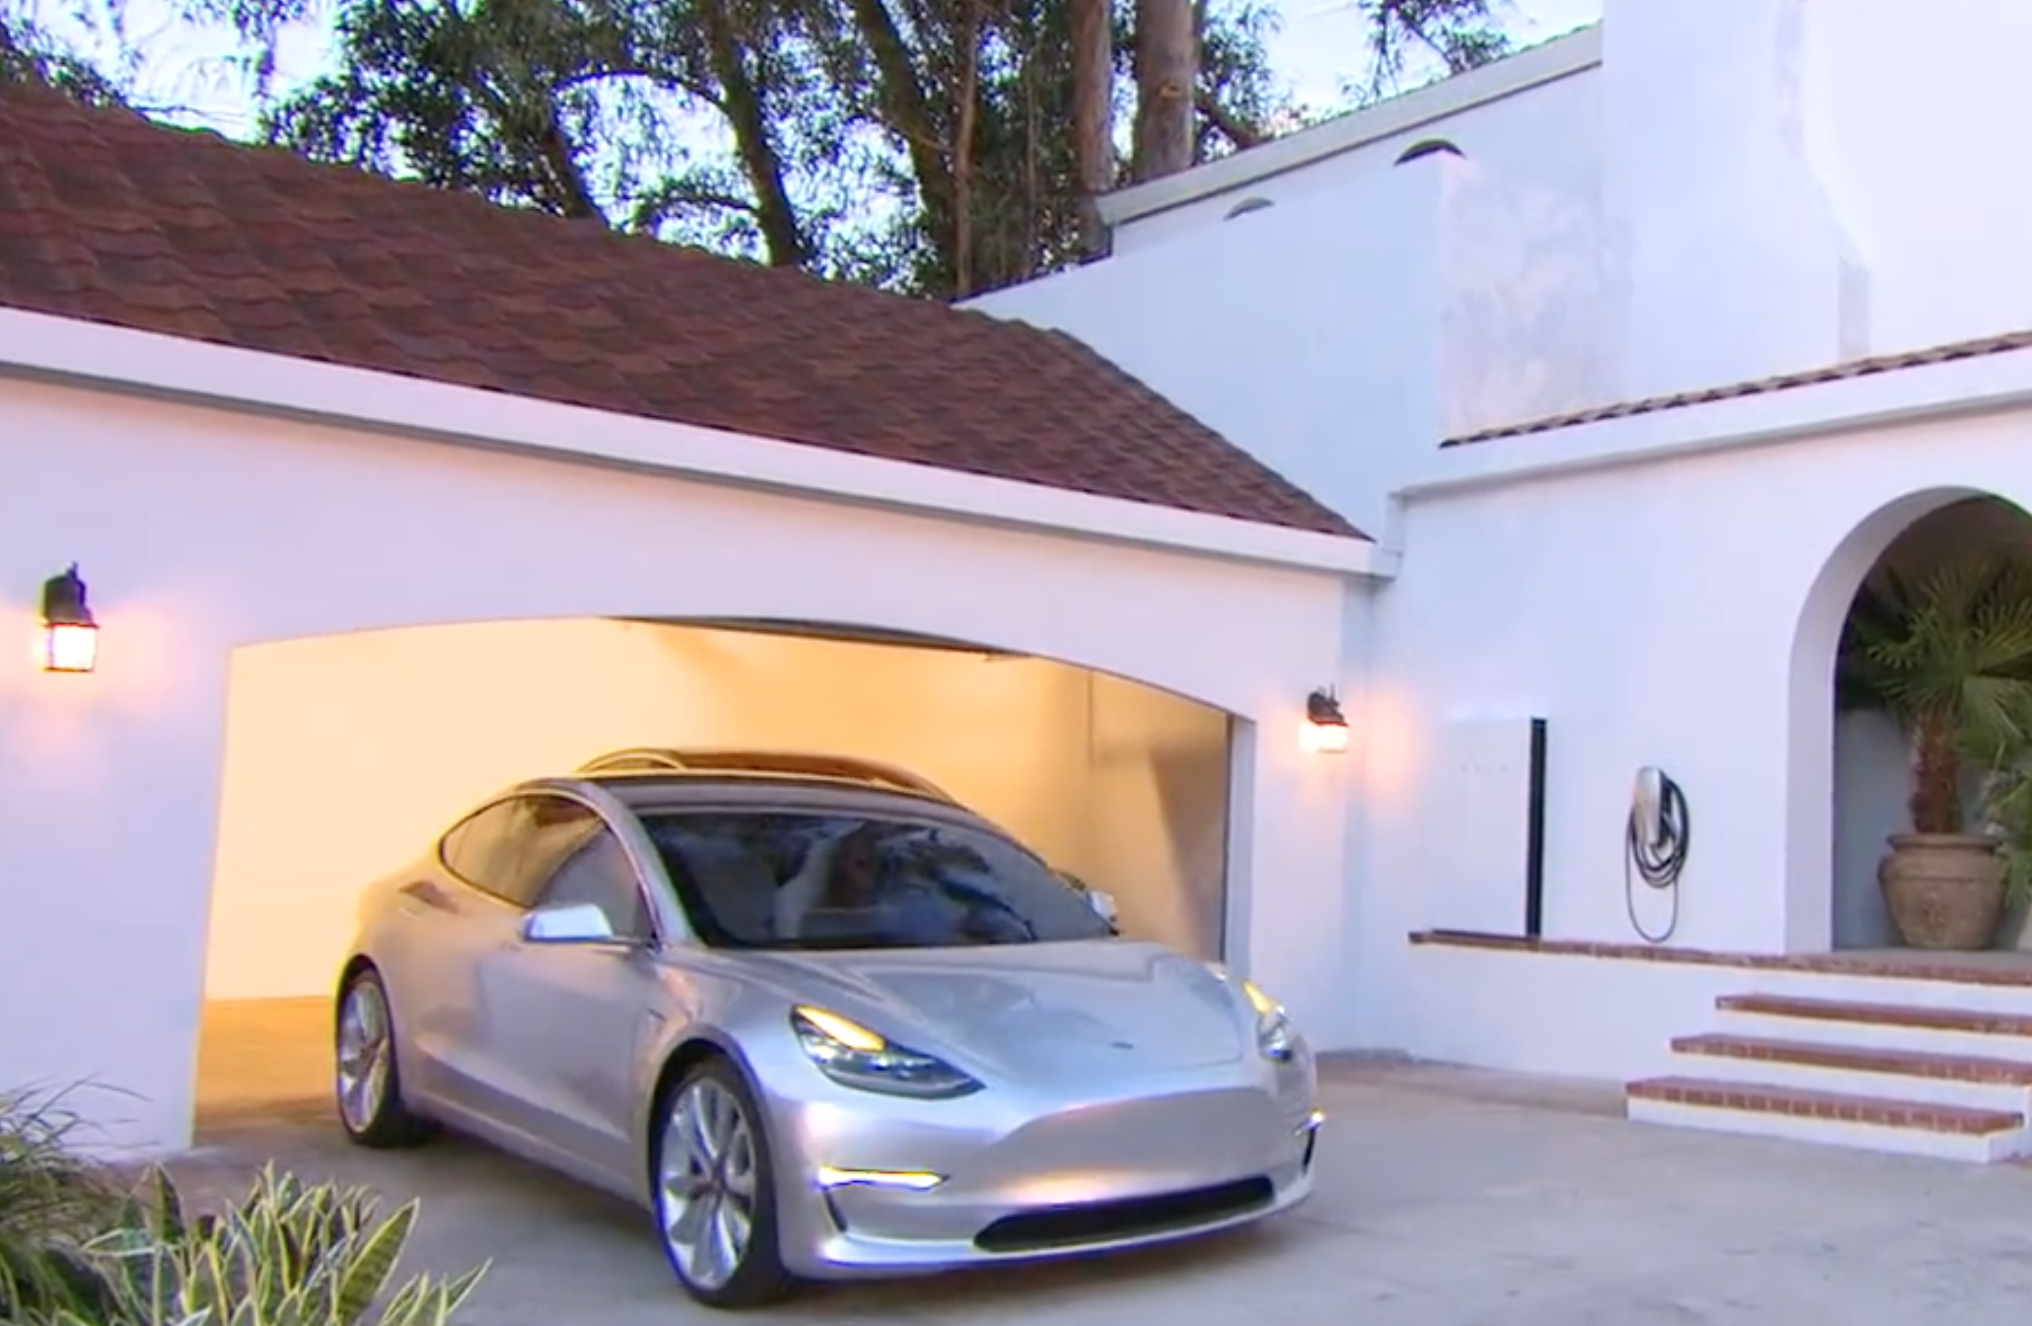 A Tesla Model 3 rolls out of a garage on a home that has solar panels in an event on Friday night.